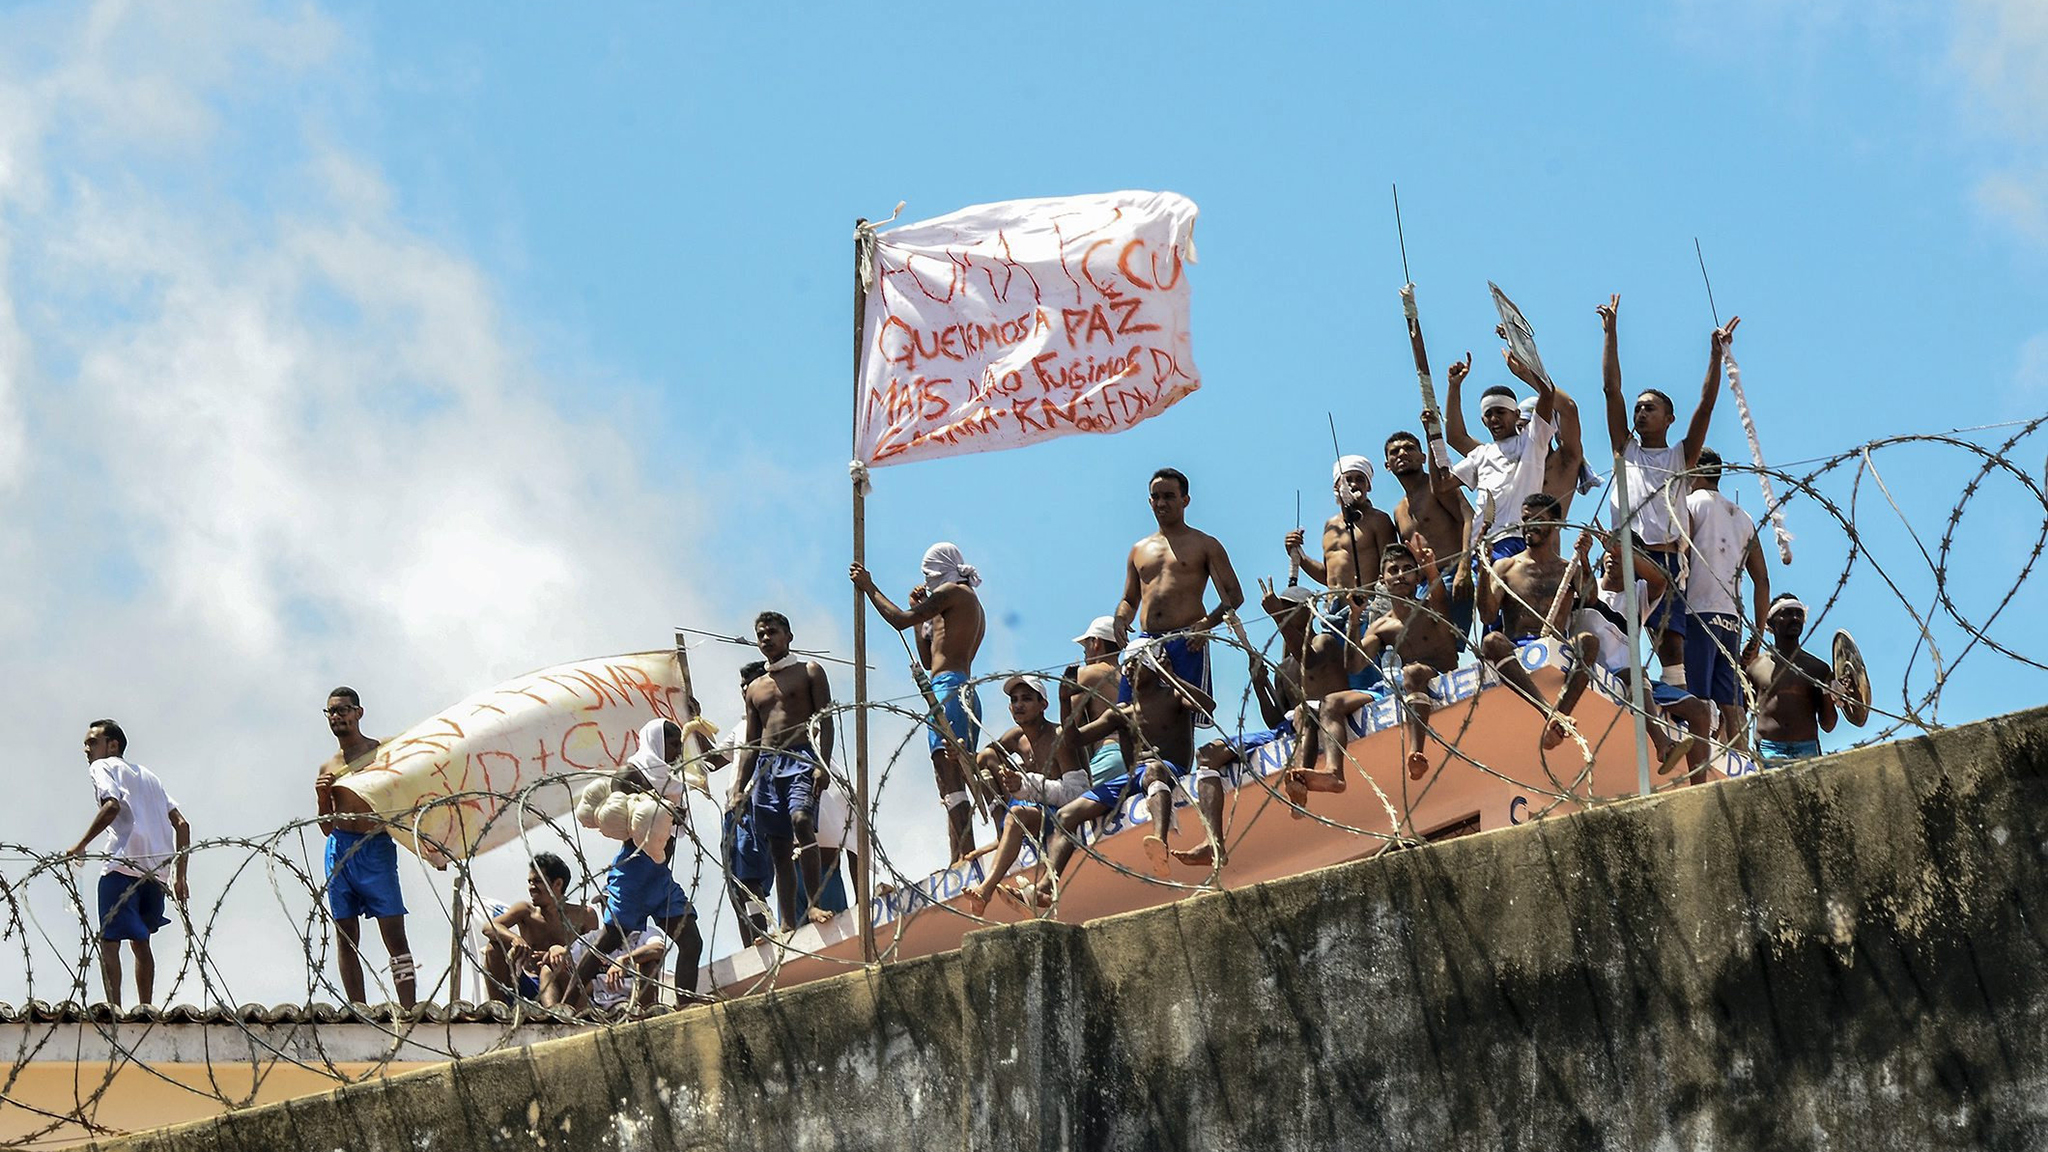 A group of inmates stand on a roof inside the State Penitentiary of Alcacuz in Nisia Floresta near Natal, Rio Grande do Norte, Brazil, 16 January 2017. Police on 15 January said they had regained control over the prison where at least 30 inmates died in a riot that started on 14 January 2017.  EPA/Ney Douglas  HANDOUT EDITORIAL USE ONLY/NO SALES